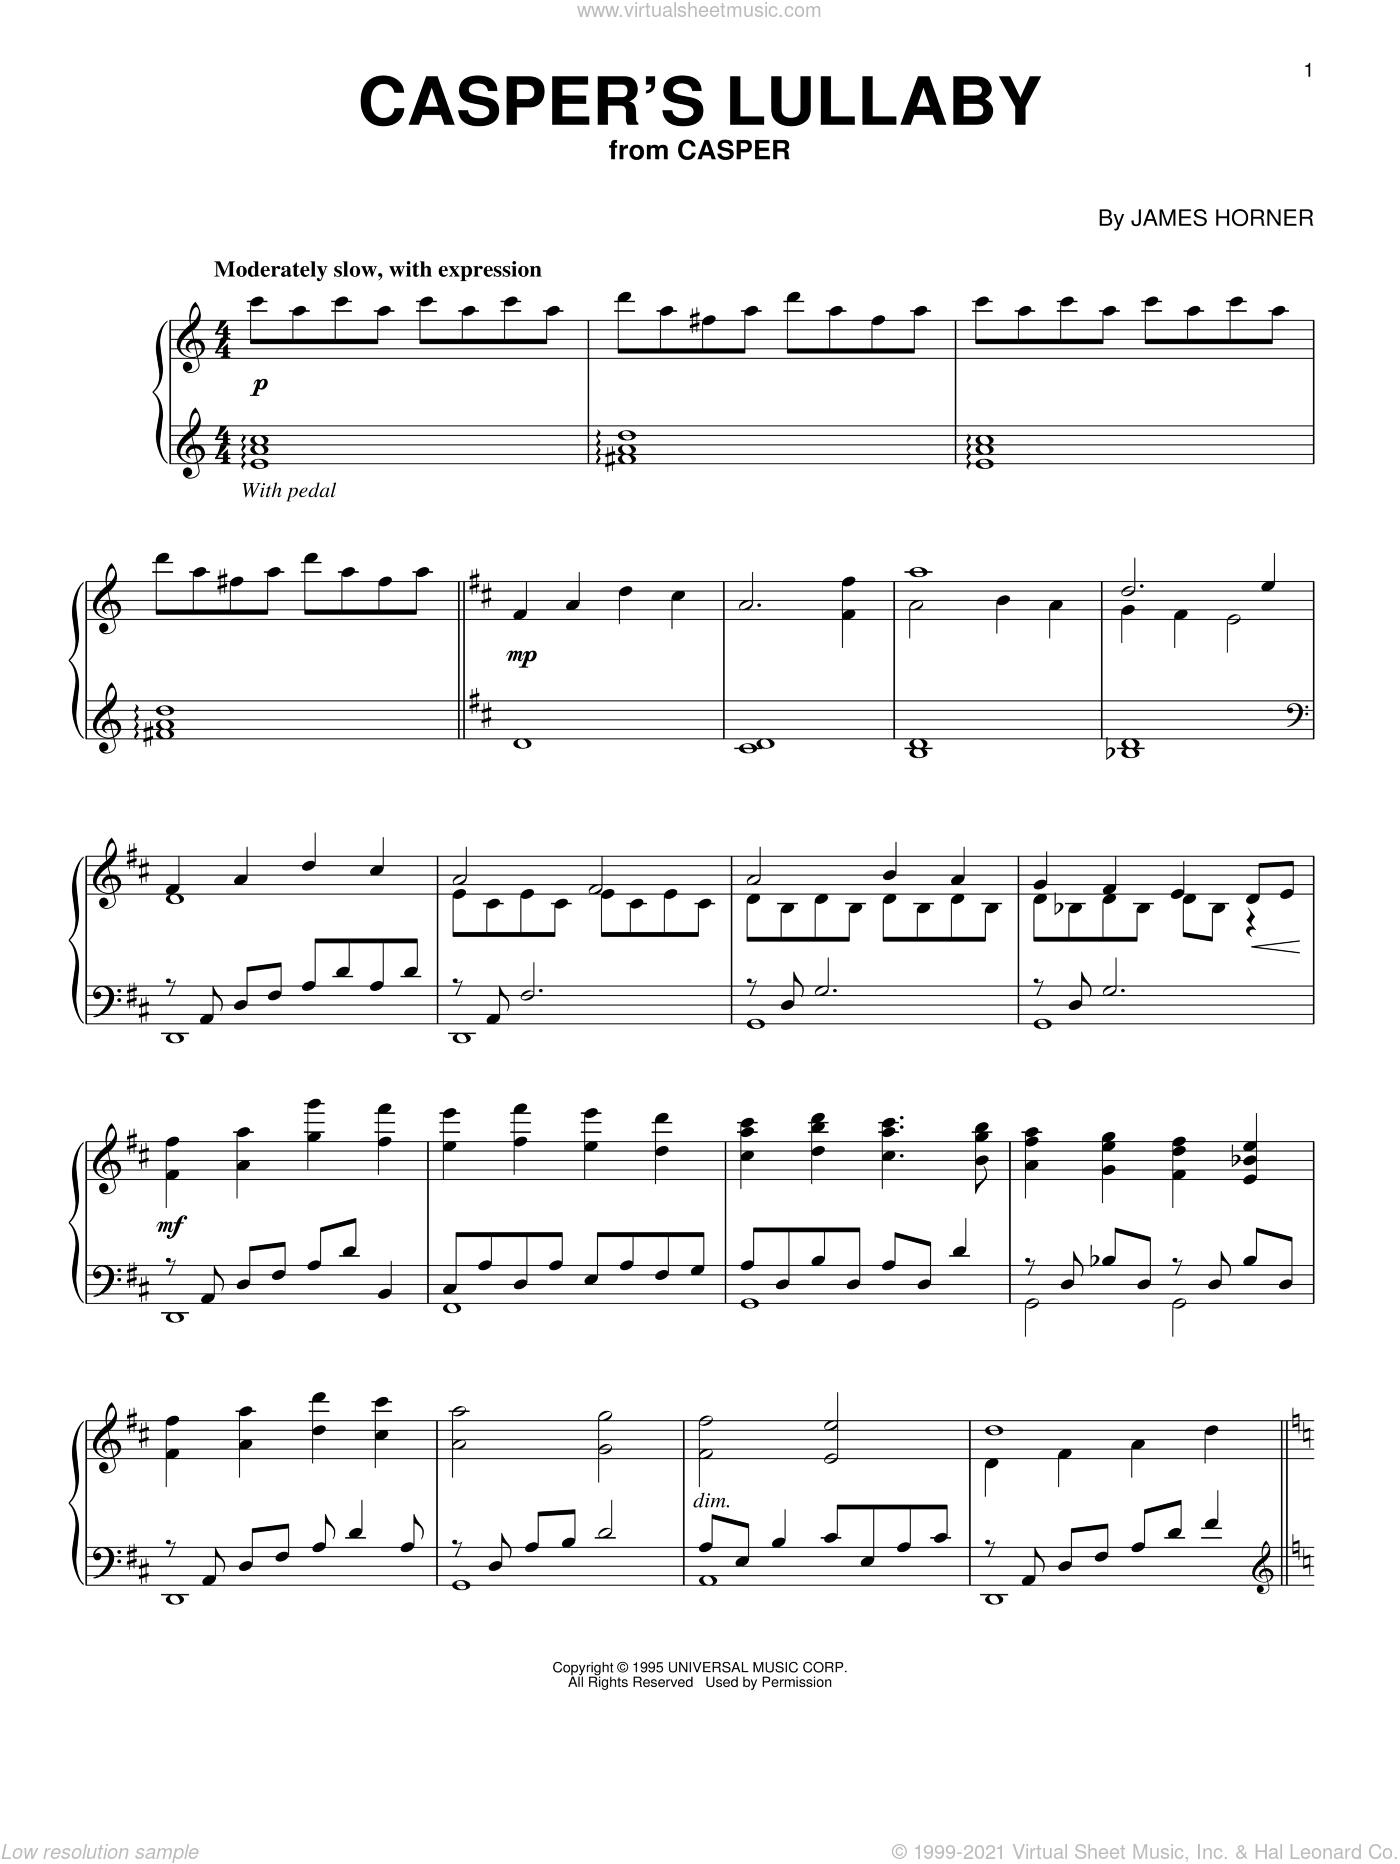 Casper's Lullaby sheet music for piano solo by James Horner, intermediate skill level